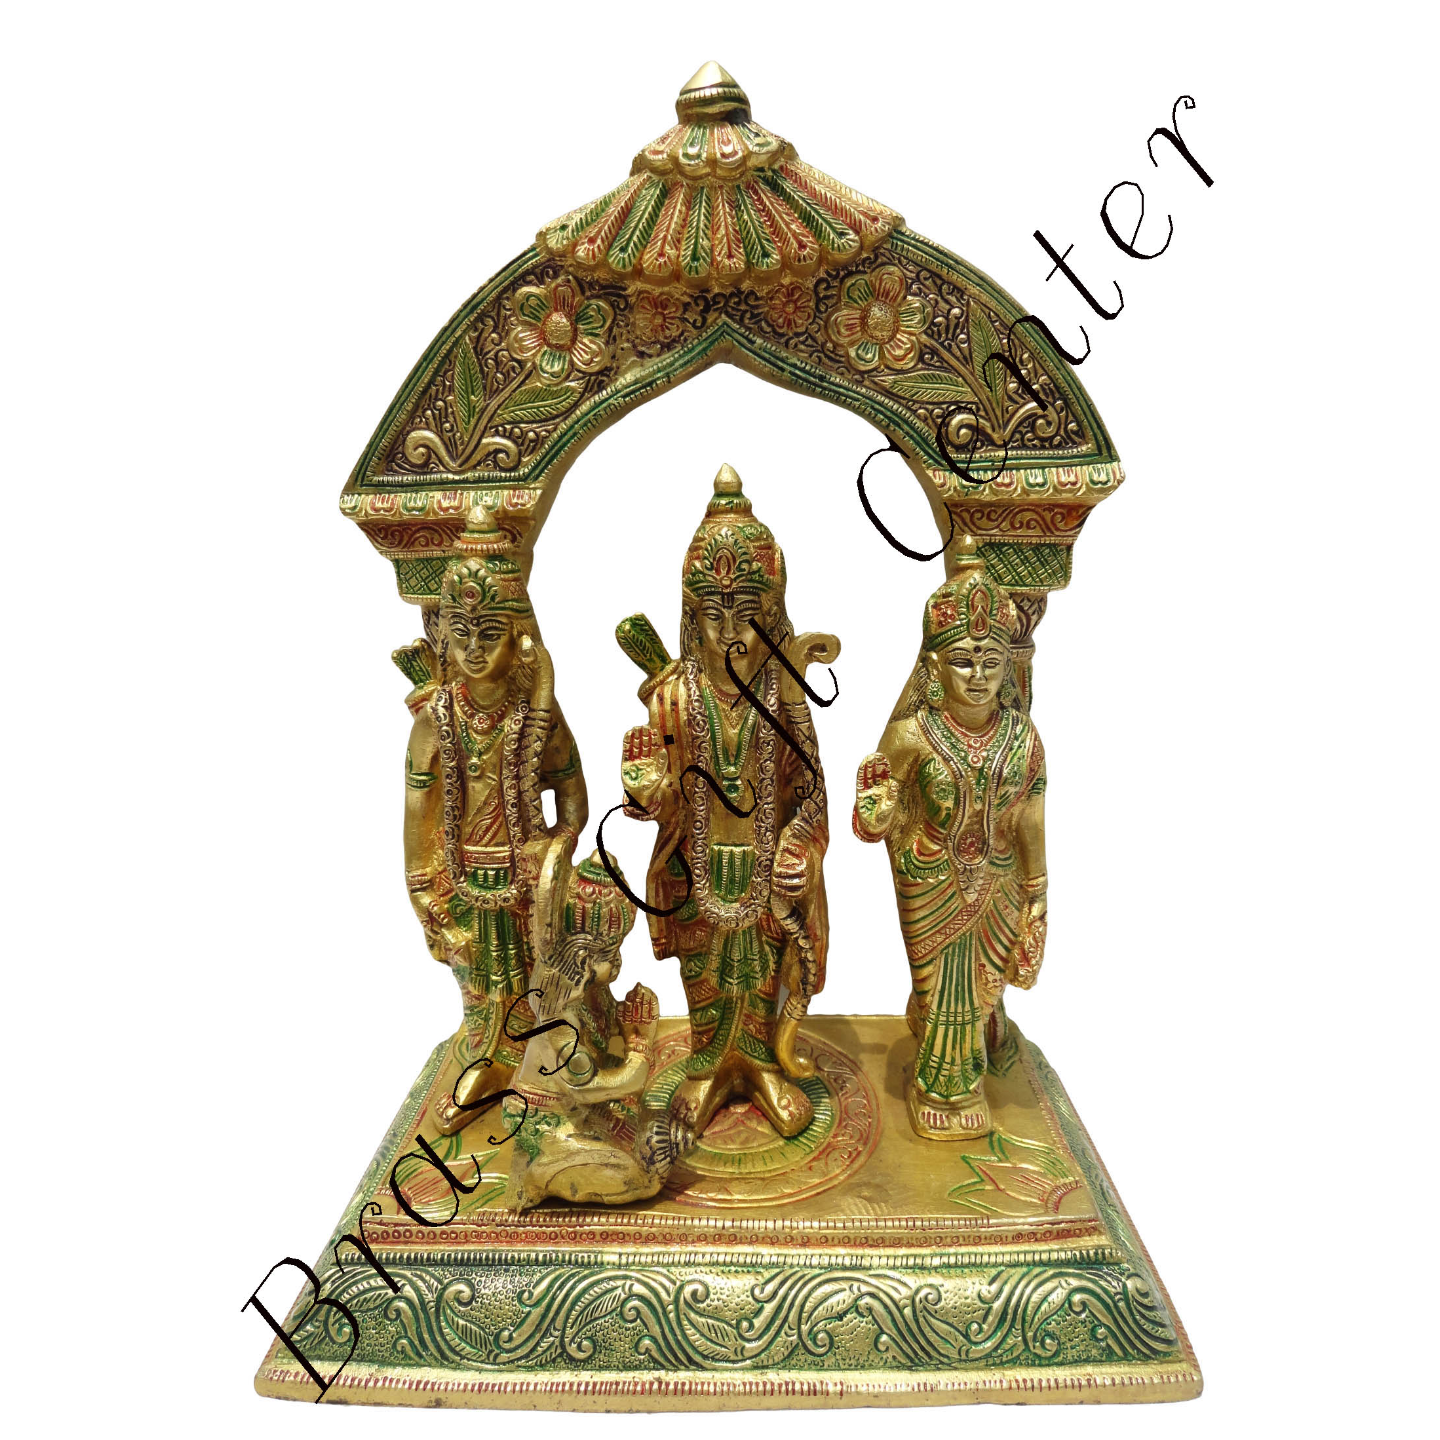 Brass Ram Dharbar Statue Idol Murti Multicolour  lacquer finish - 9*5*12 Inch  (BS131)